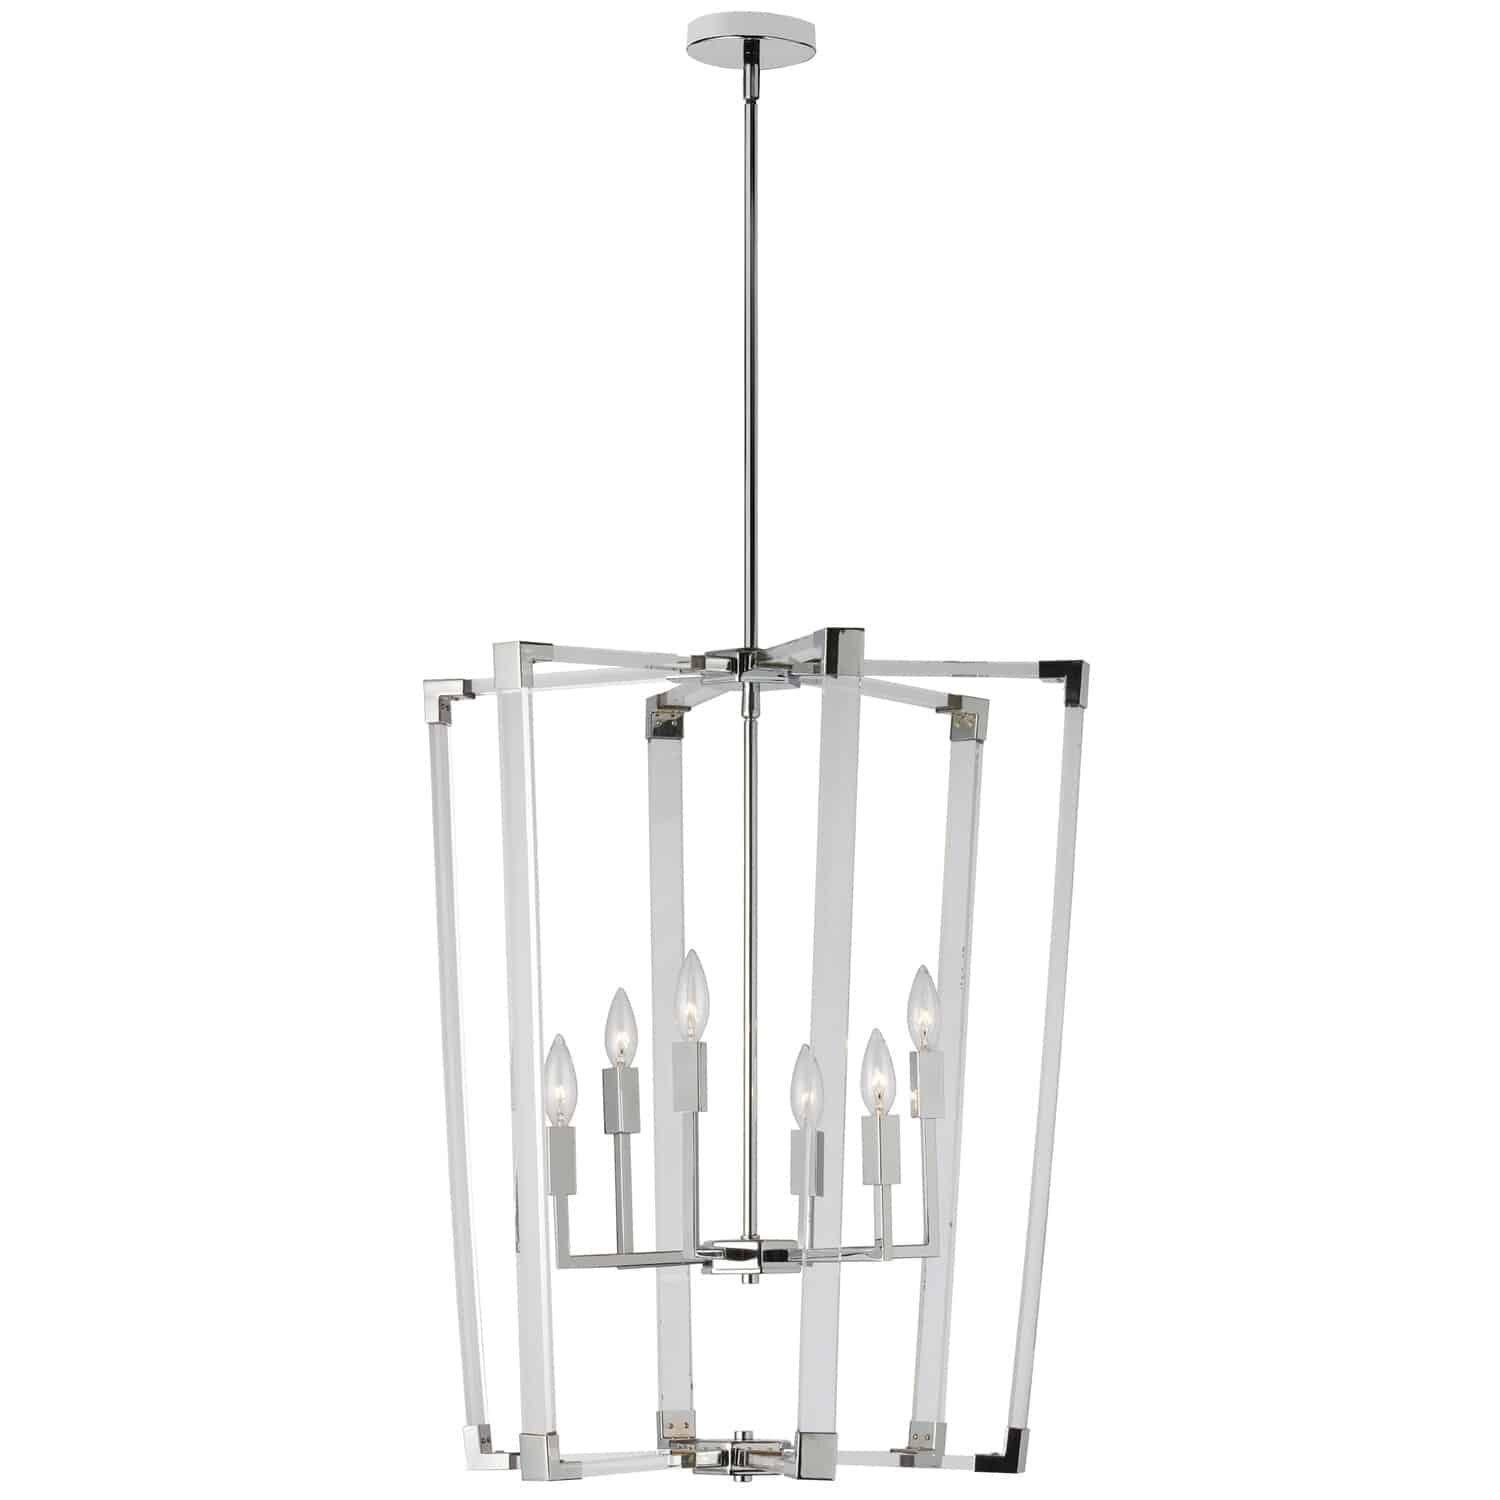 6 Light Incandescent Acrylic Pendant, Polished Chrome Finish with Clear Acrylic Arms